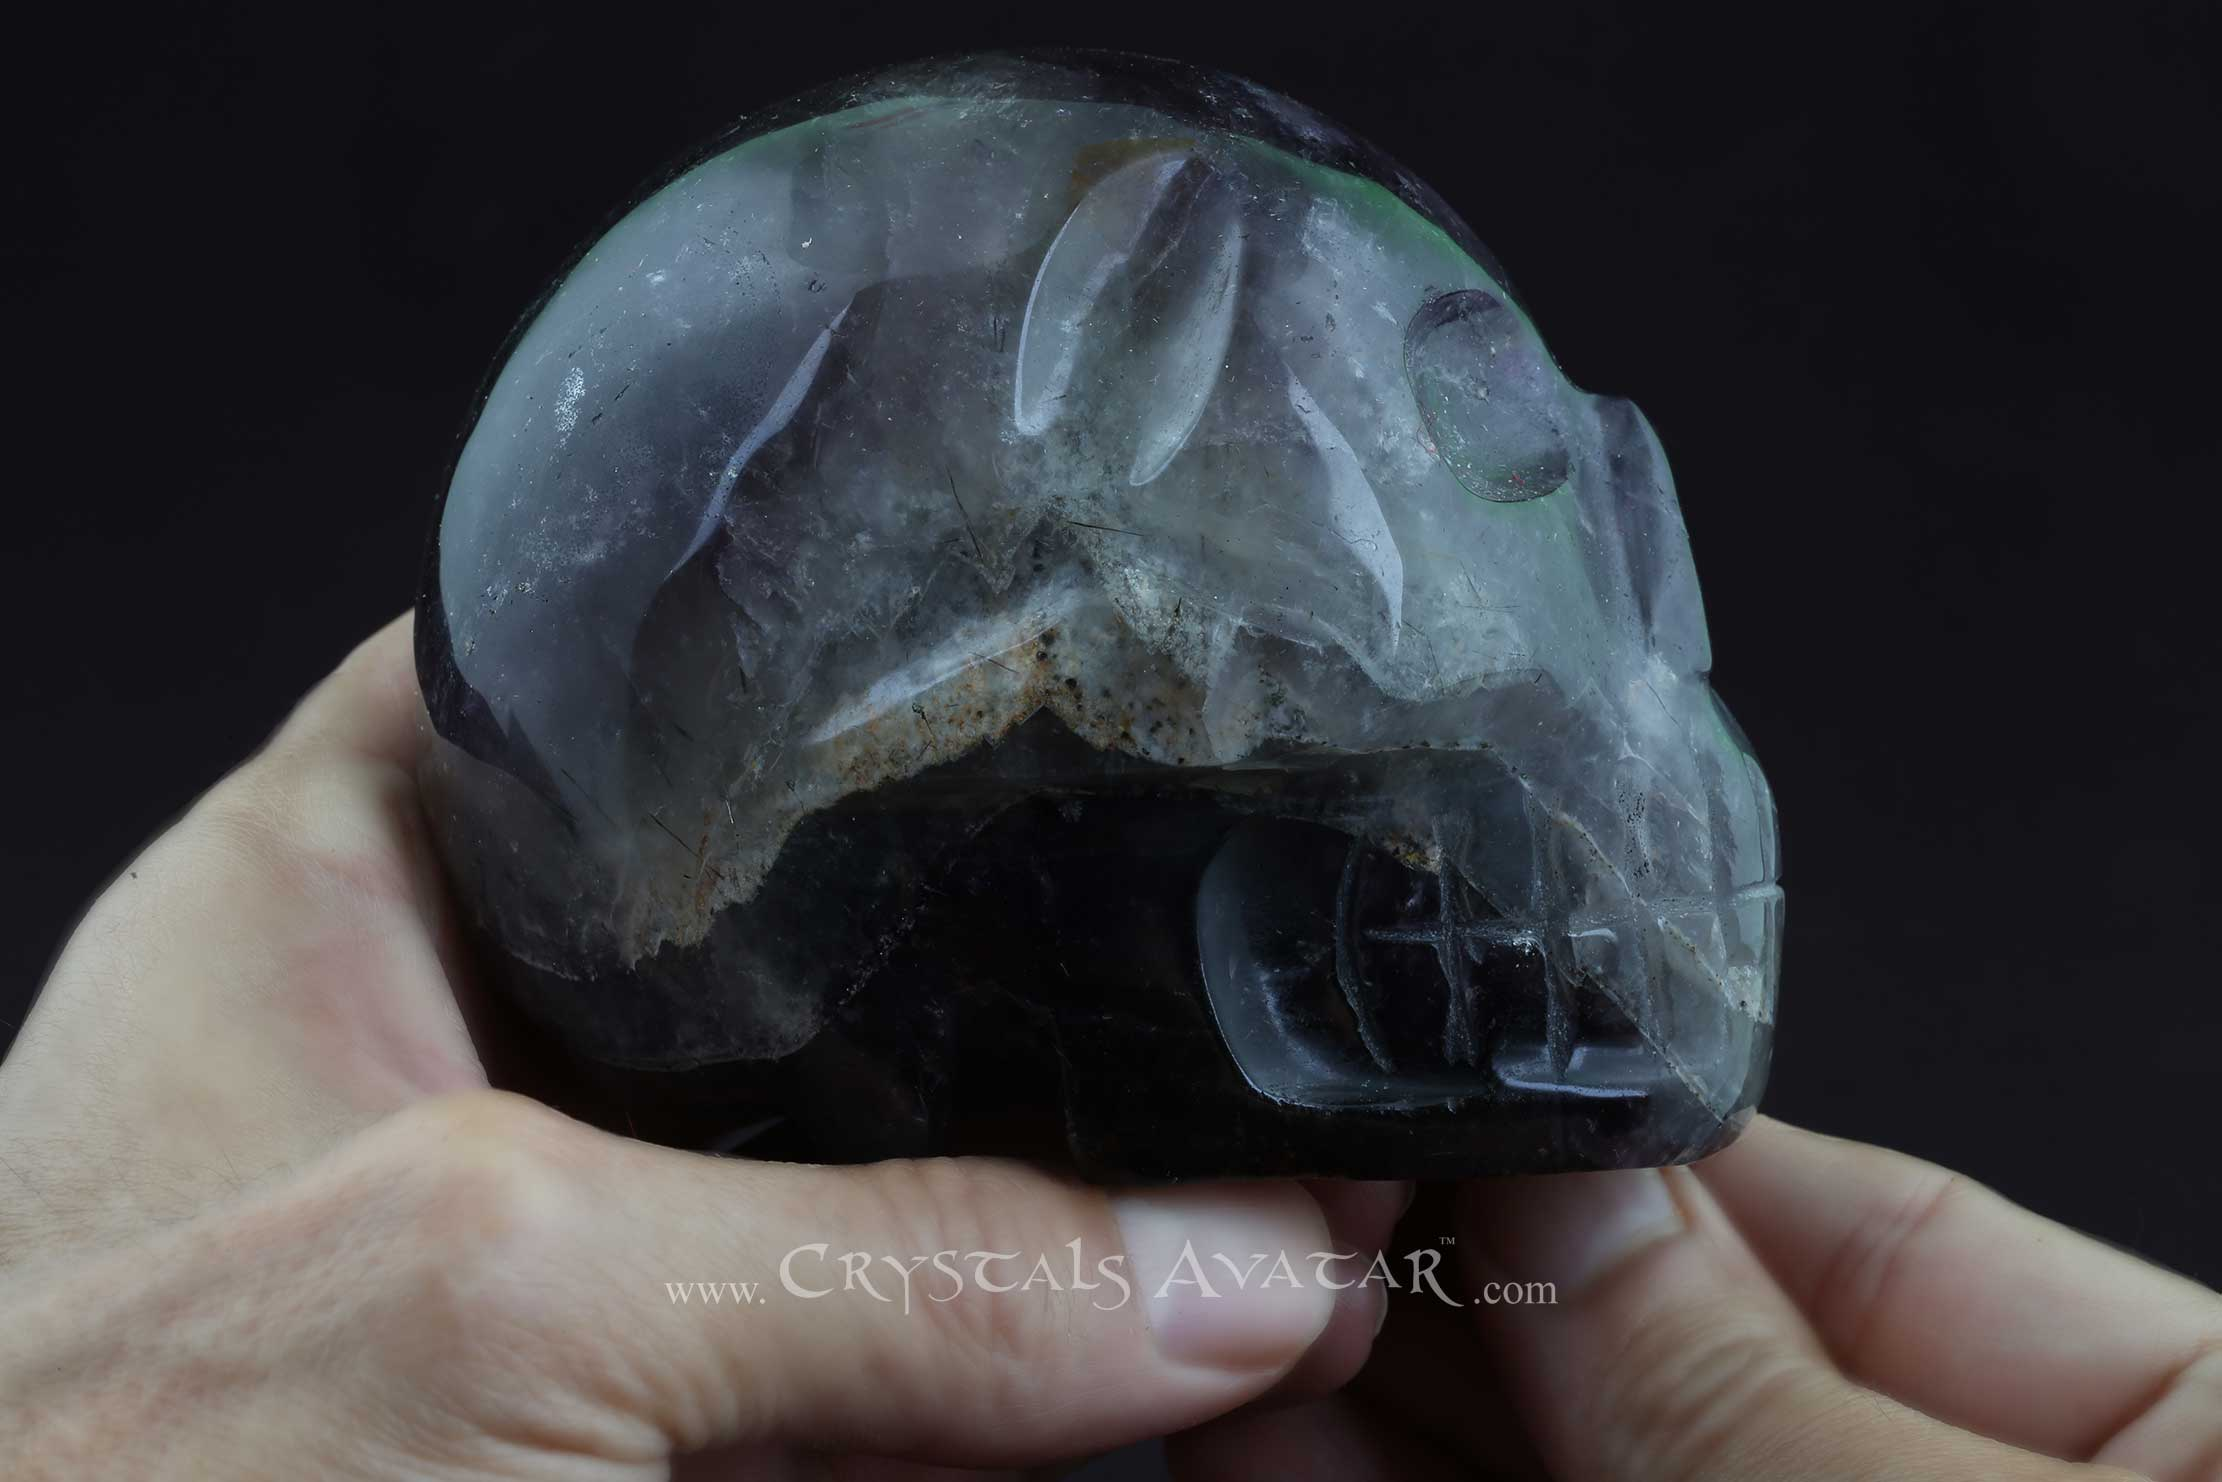 Auralite-23 Crystal Skull, Chevron, Polished, Hand Carved, Stone